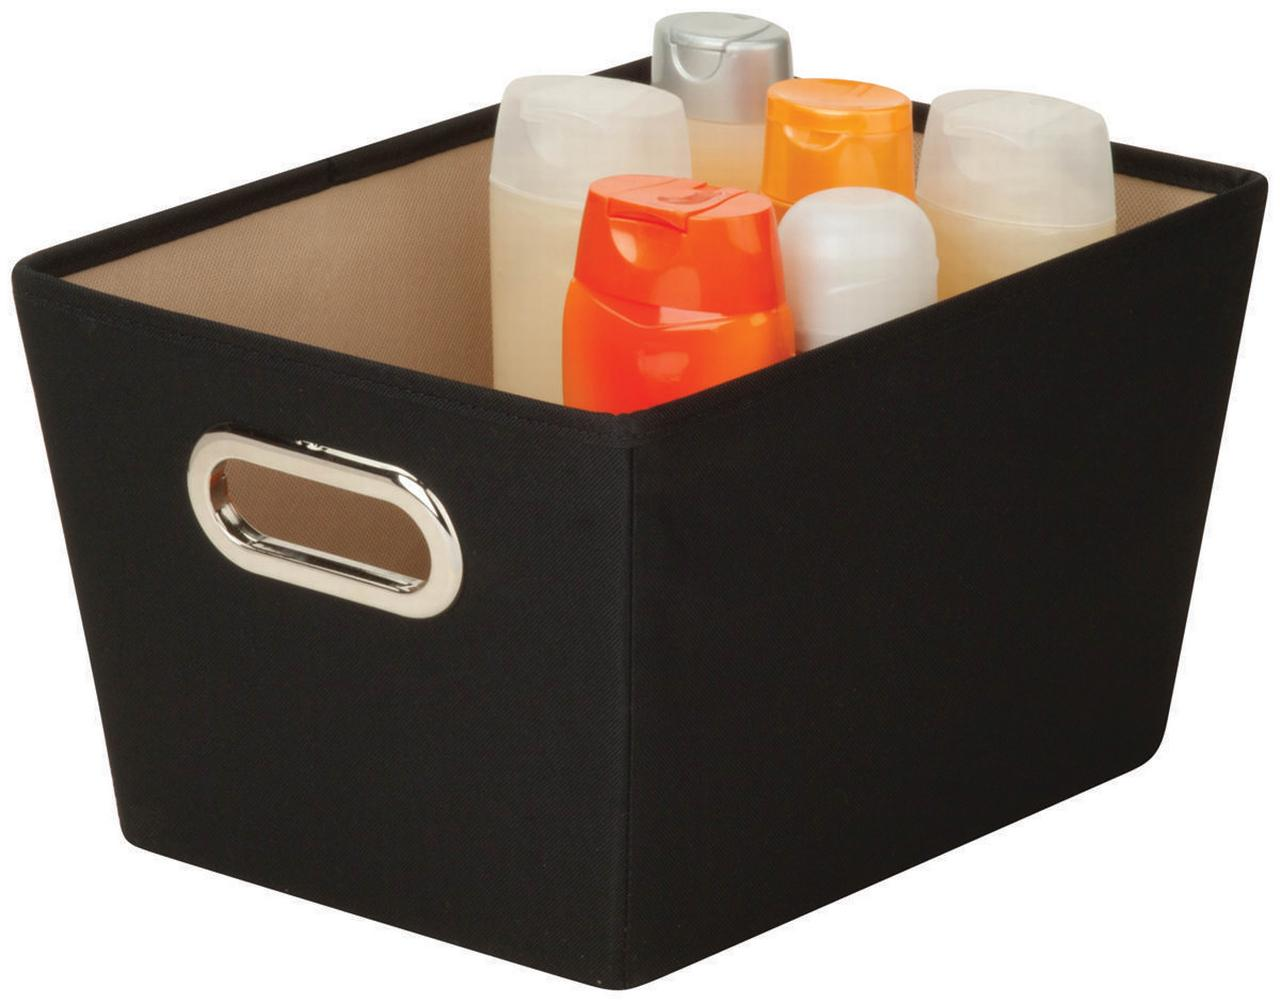 Honey Can Do Large Decorative Storage Bin with Handles, Multicolor by Honey Can Do